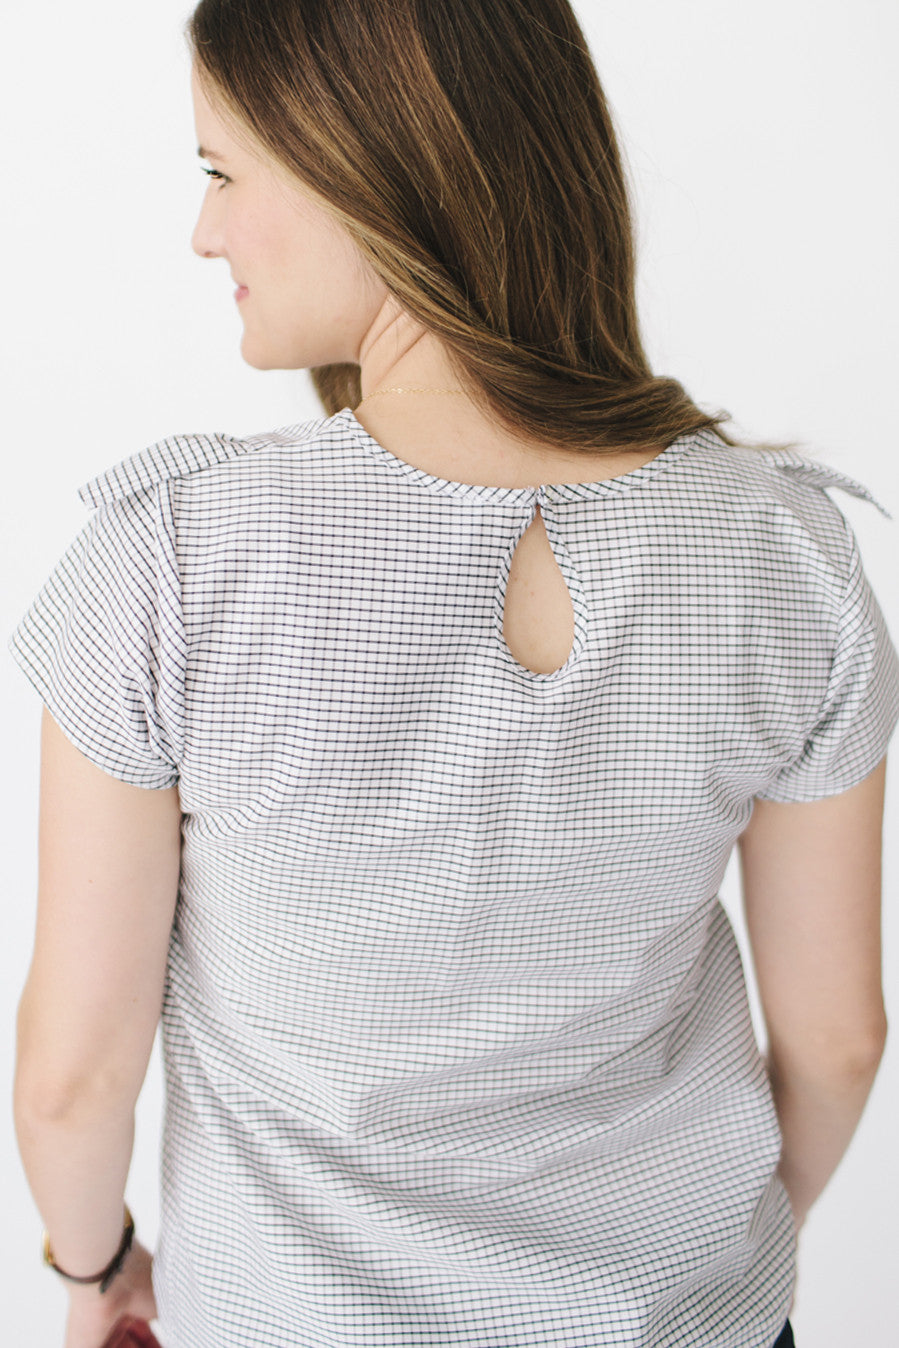 The Ruffle Top - Black + White Grid